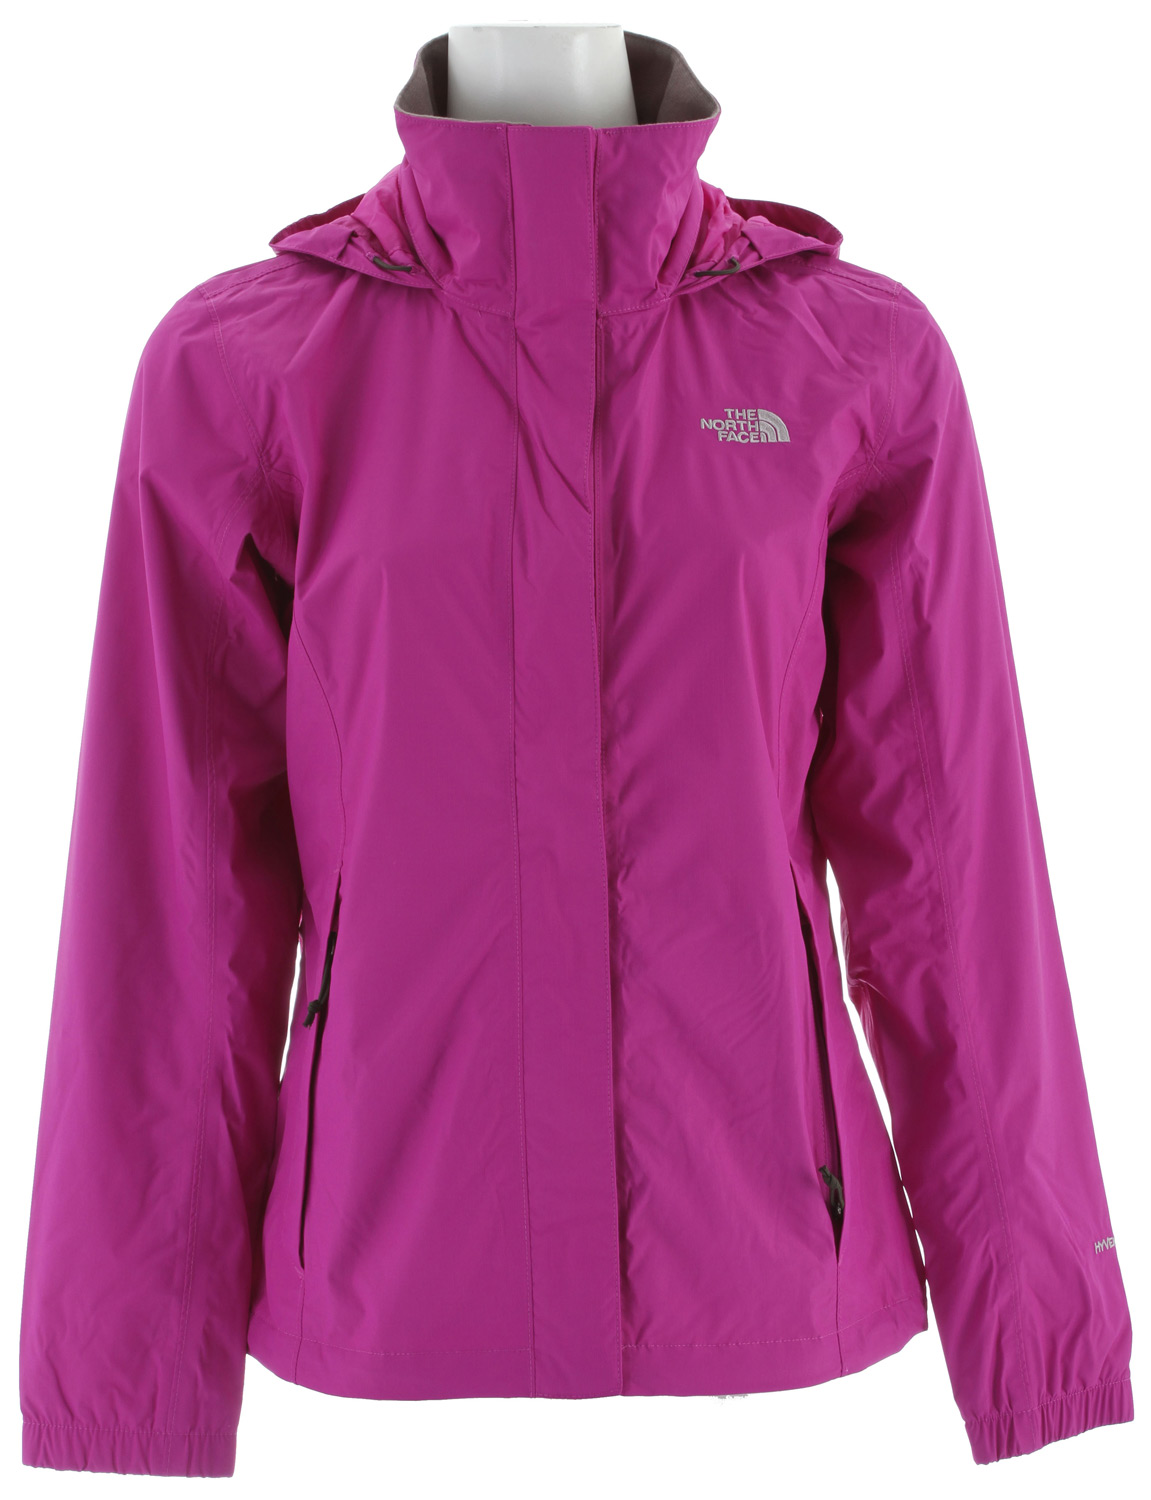 Mesh-lined, waterproof, breathable, seam-sealed jacket equipped for hard play in the worst weather. Key Features of the The North Face Resolve Jacket: Fabric: body: 70D 105 g/m2 (3.1 oz/yd2) nylon ripstop HyVent® 2L lining: mesh knit Standard fit Waterproof, breathable, seam sealed Mesh lined Attached, adjustable hood stows in collar Brushed chin guard Center front zip and Velcro® closure Two hand pockets Hem cinch-cord - $62.95